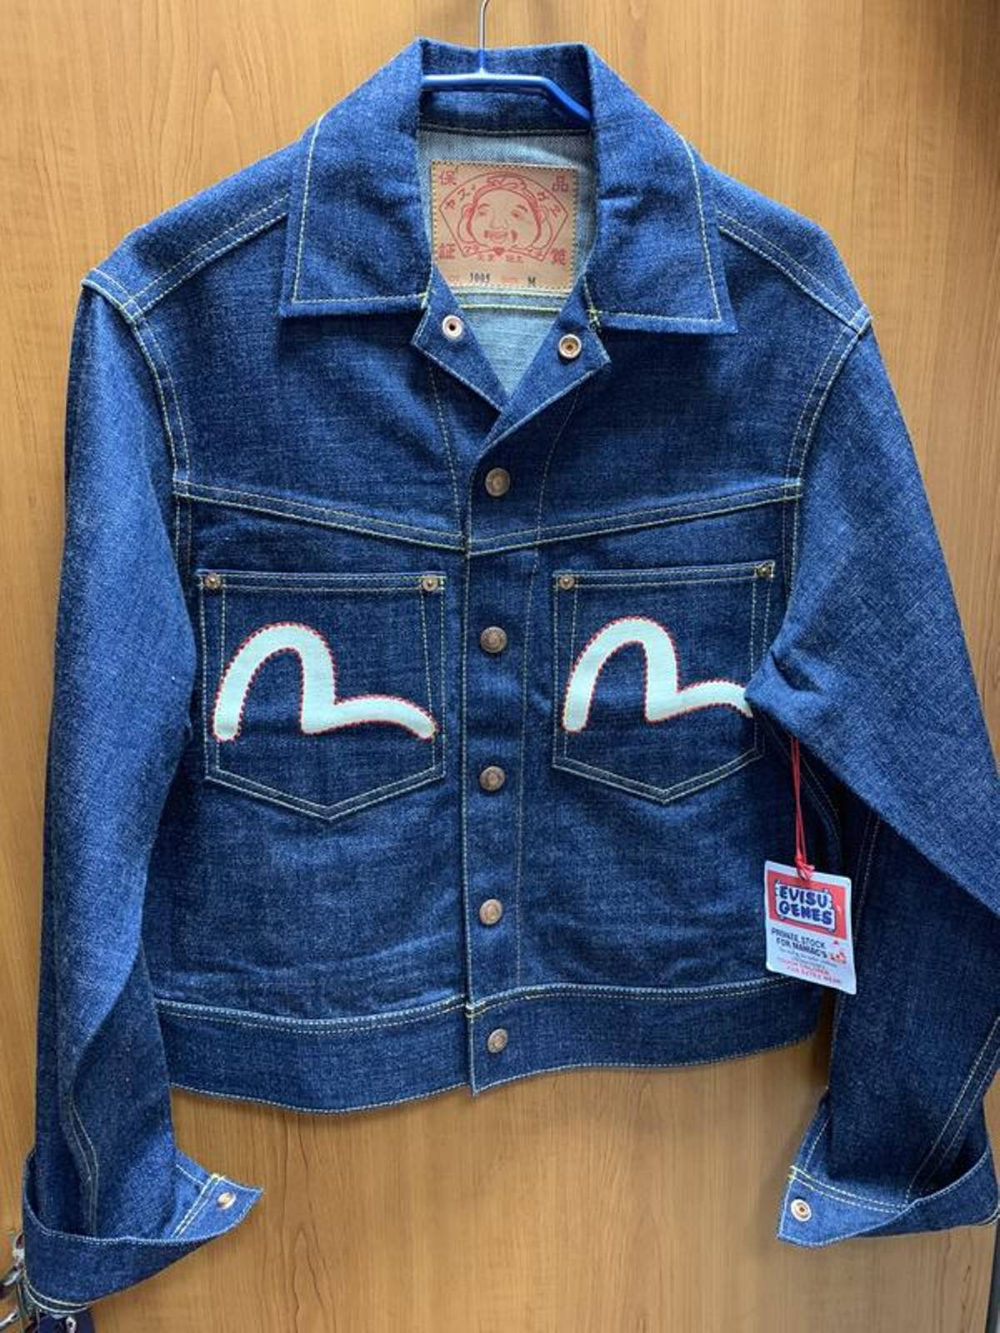 Searching For Nwt Evisu Denim Jacket We Ve Got Evisu Outerwear Starting At 250 And Plenty Of Other Outerwear Shop Our Selectio Denim Jacket Clothes Menswear [ 1333 x 1000 Pixel ]